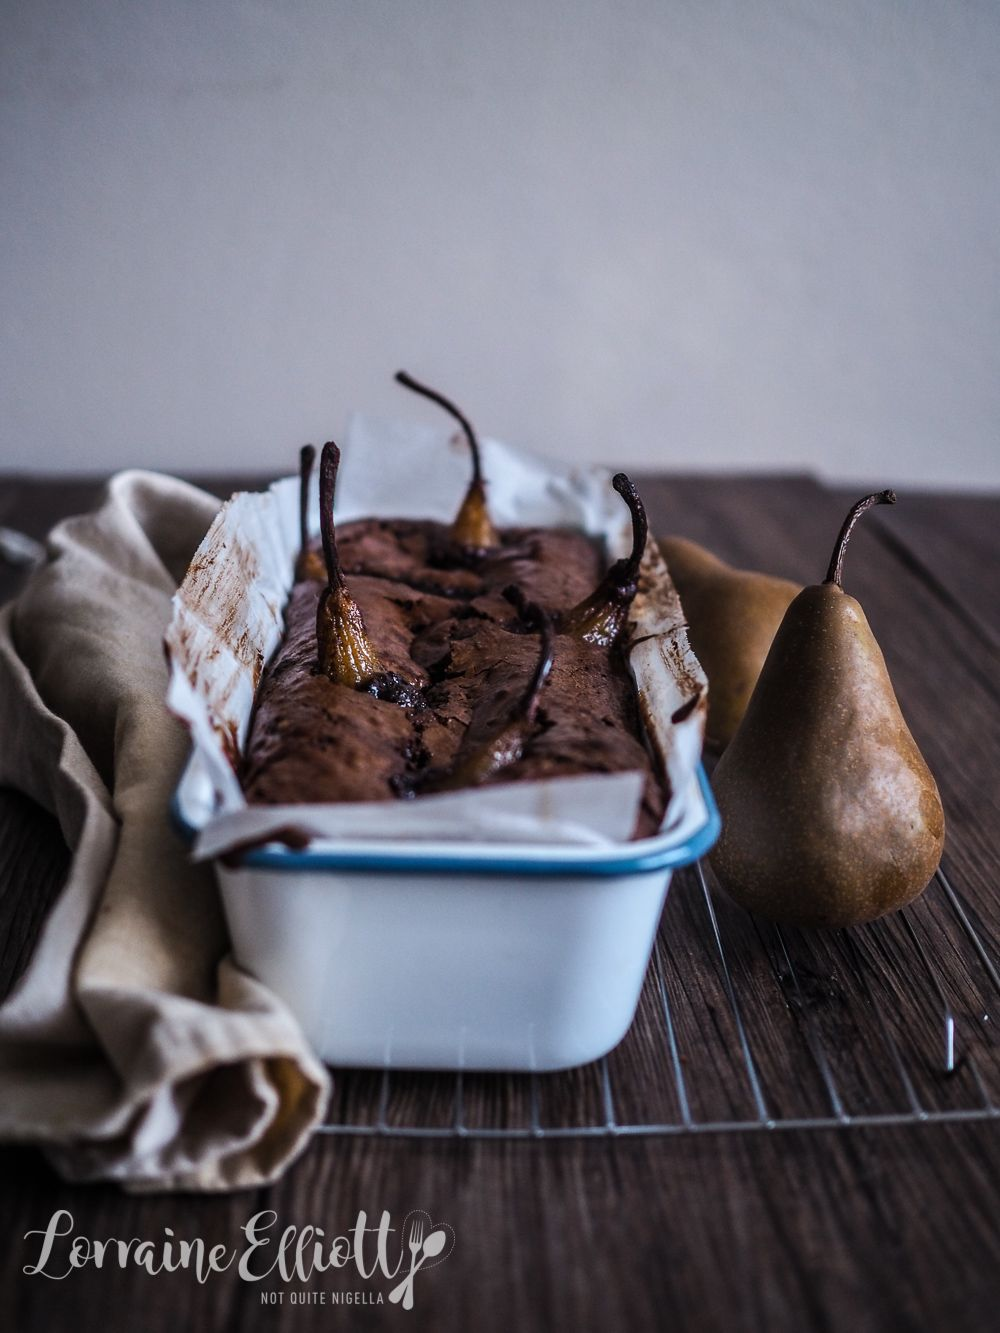 Whole Spiced Pear & Chocolate Loaf Cake (Gluten Free